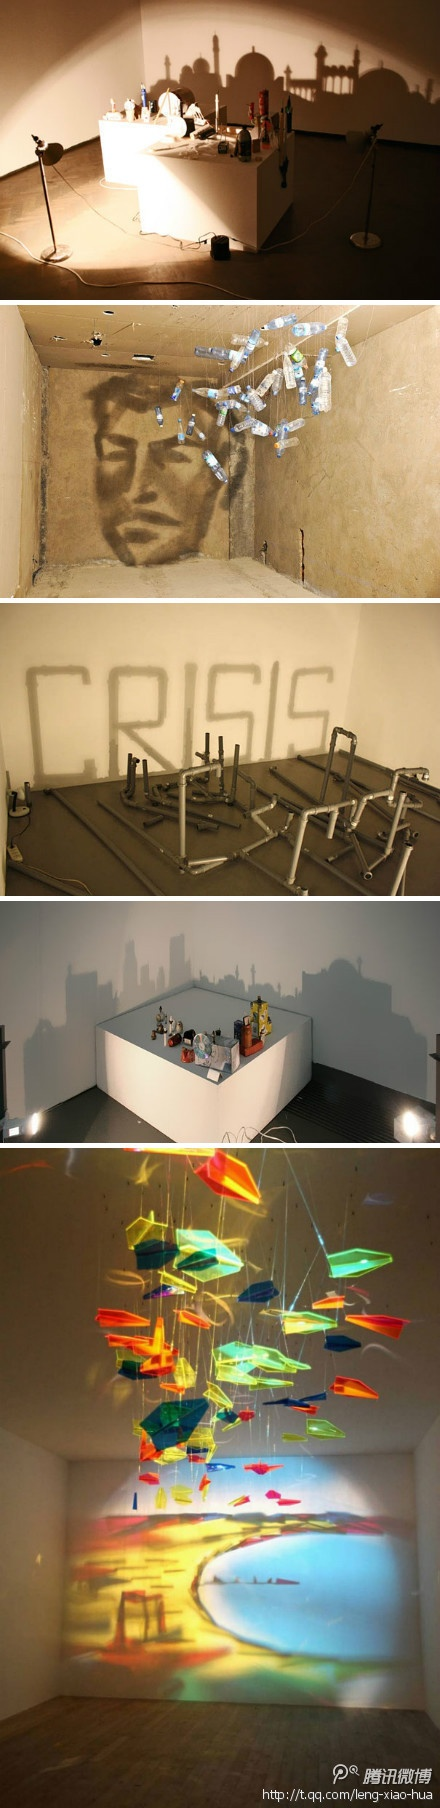 : Projects, Inspiration, Lighting And Shadows, Shadows Photography, Amazing Shadows, Art Installations, Creative Art, So Cool, Shadows Art